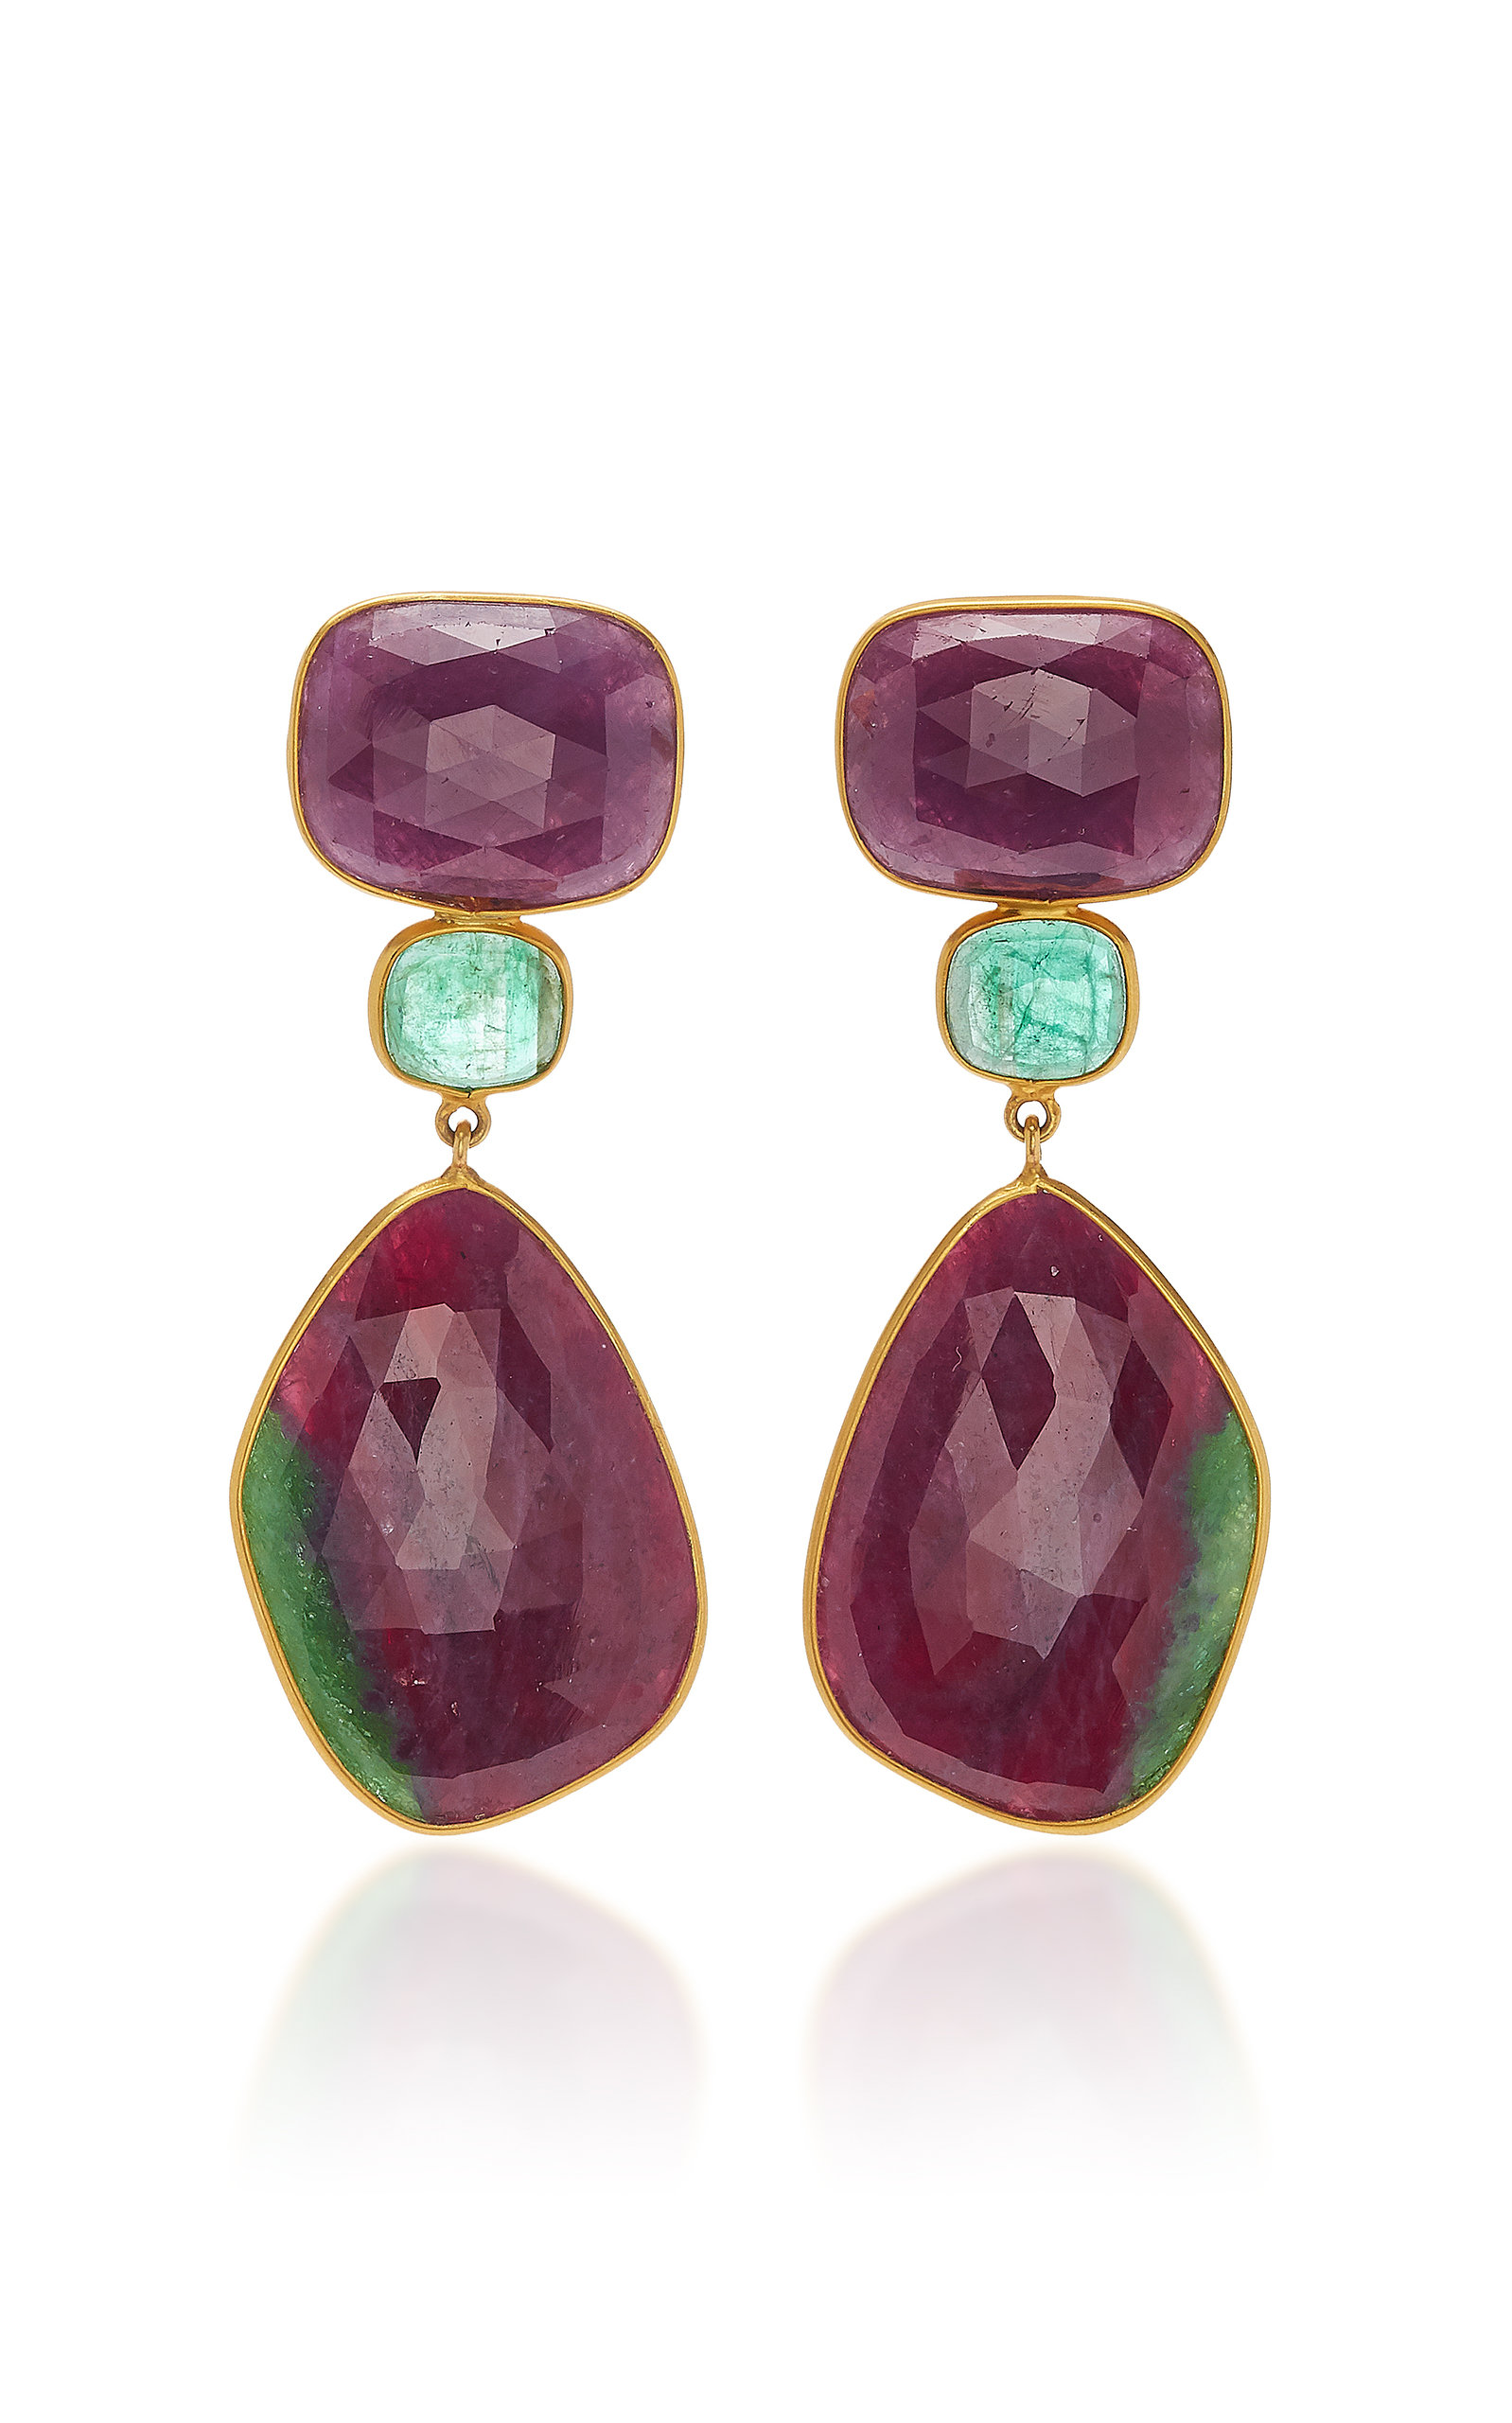 BAHINA 18K Gold Ruby And Emerald Earrings in Green